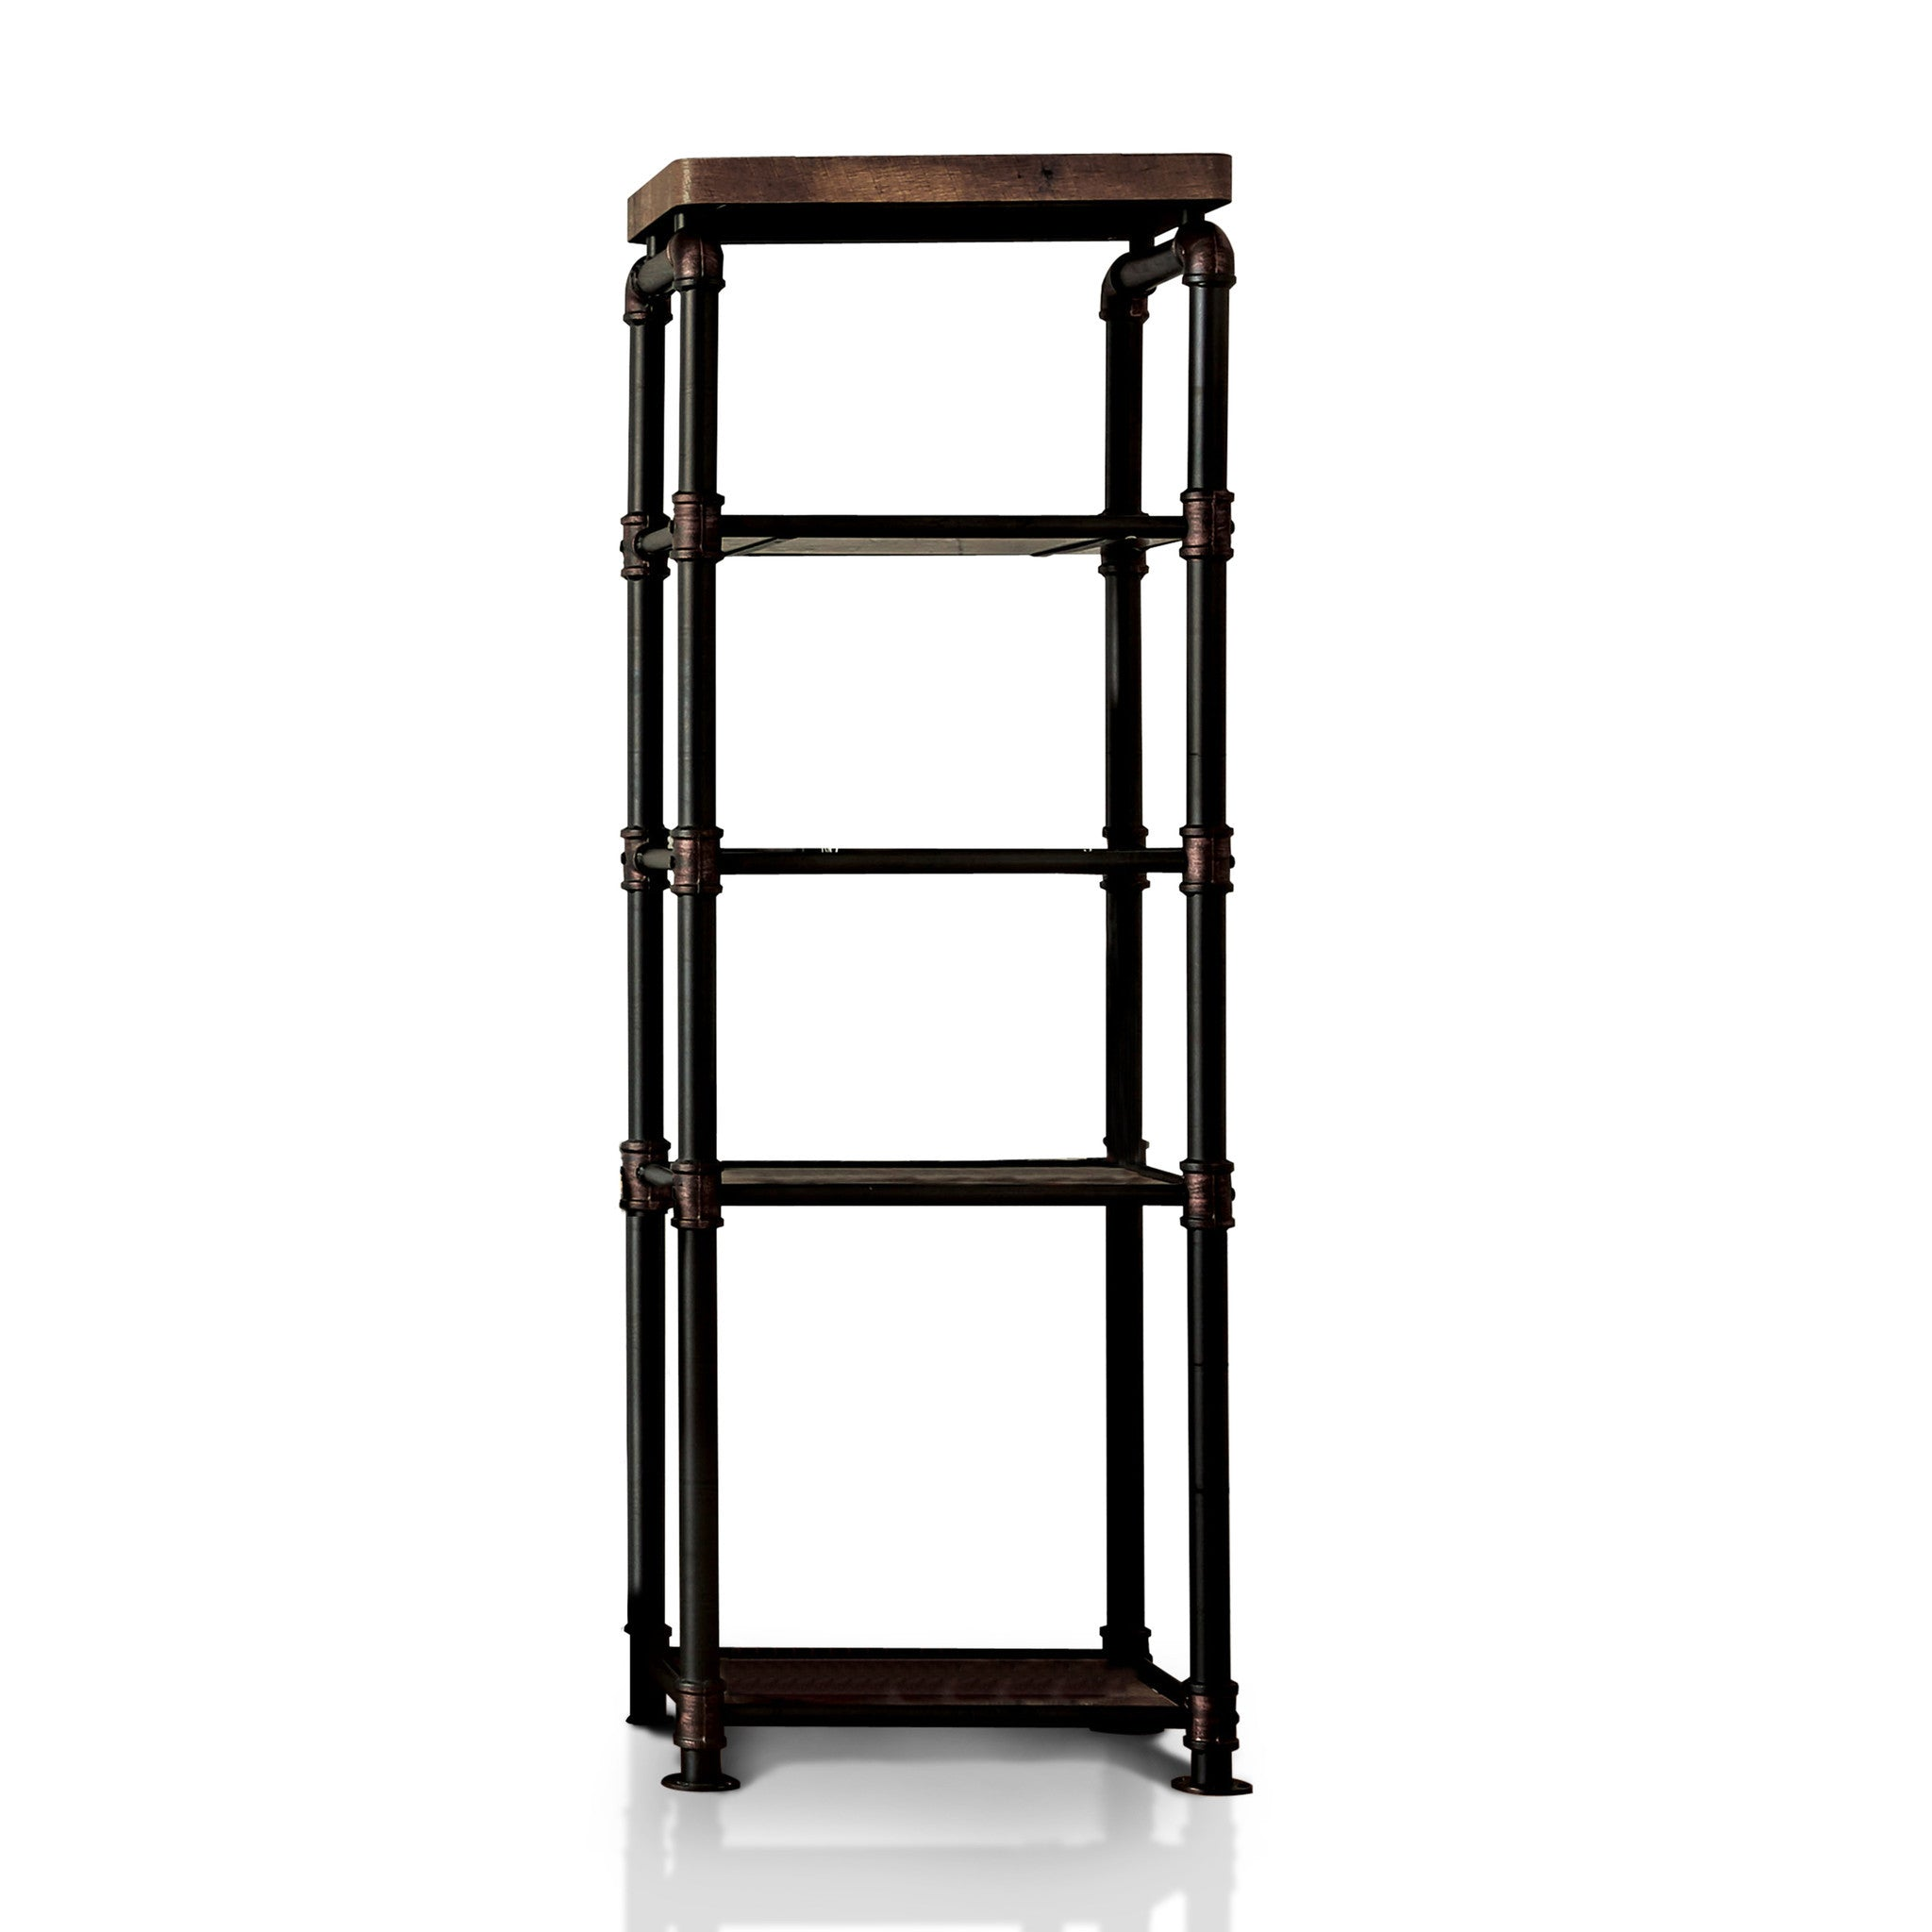 Arleen Industrial Pier Cabinet In Antique Black Emfurn